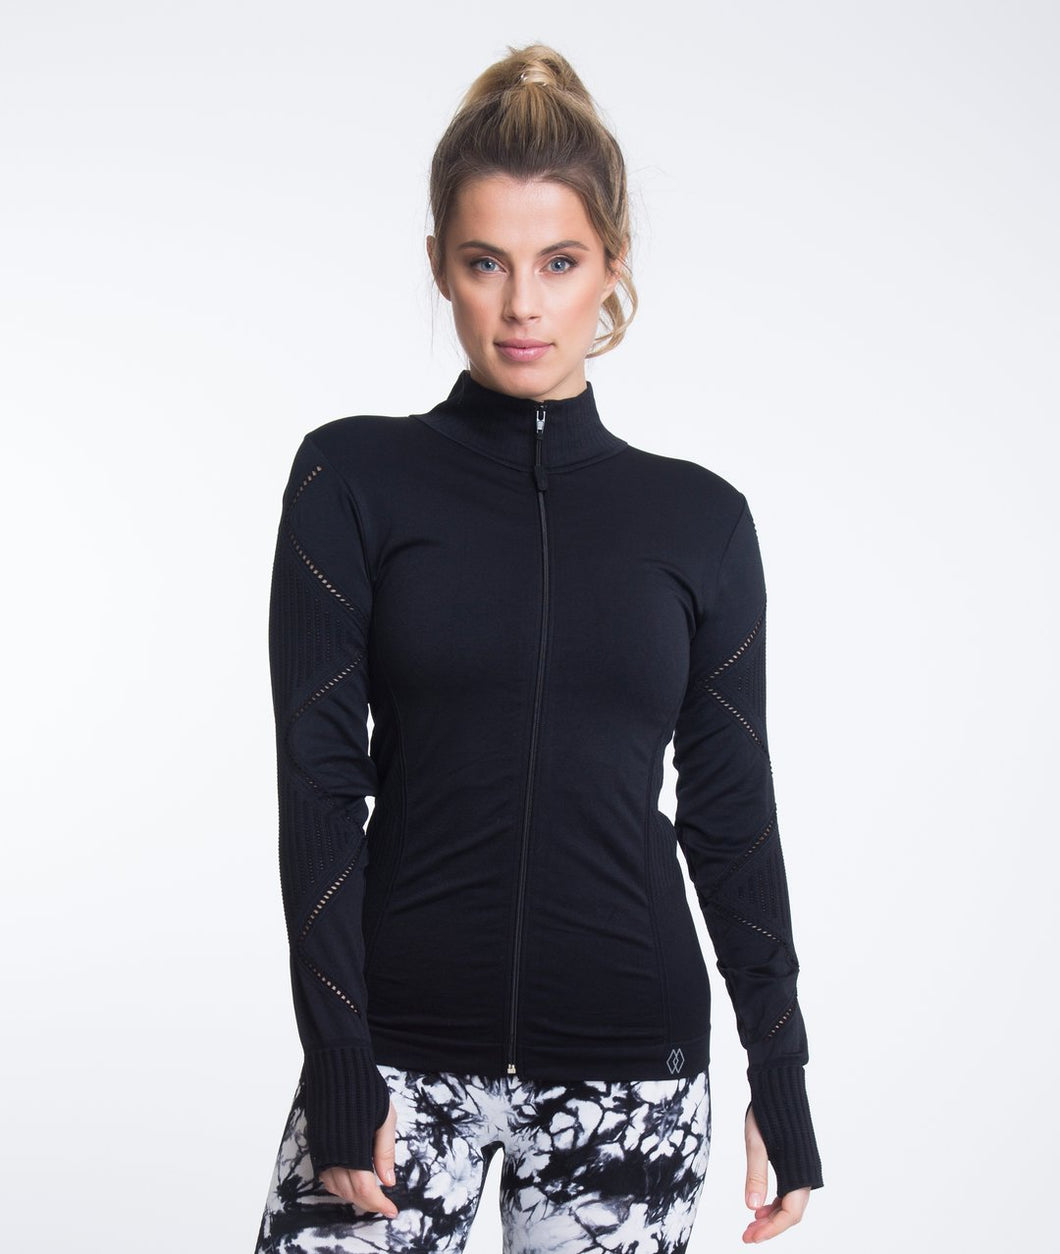 Climawear Amalia Zip Jacket- Black